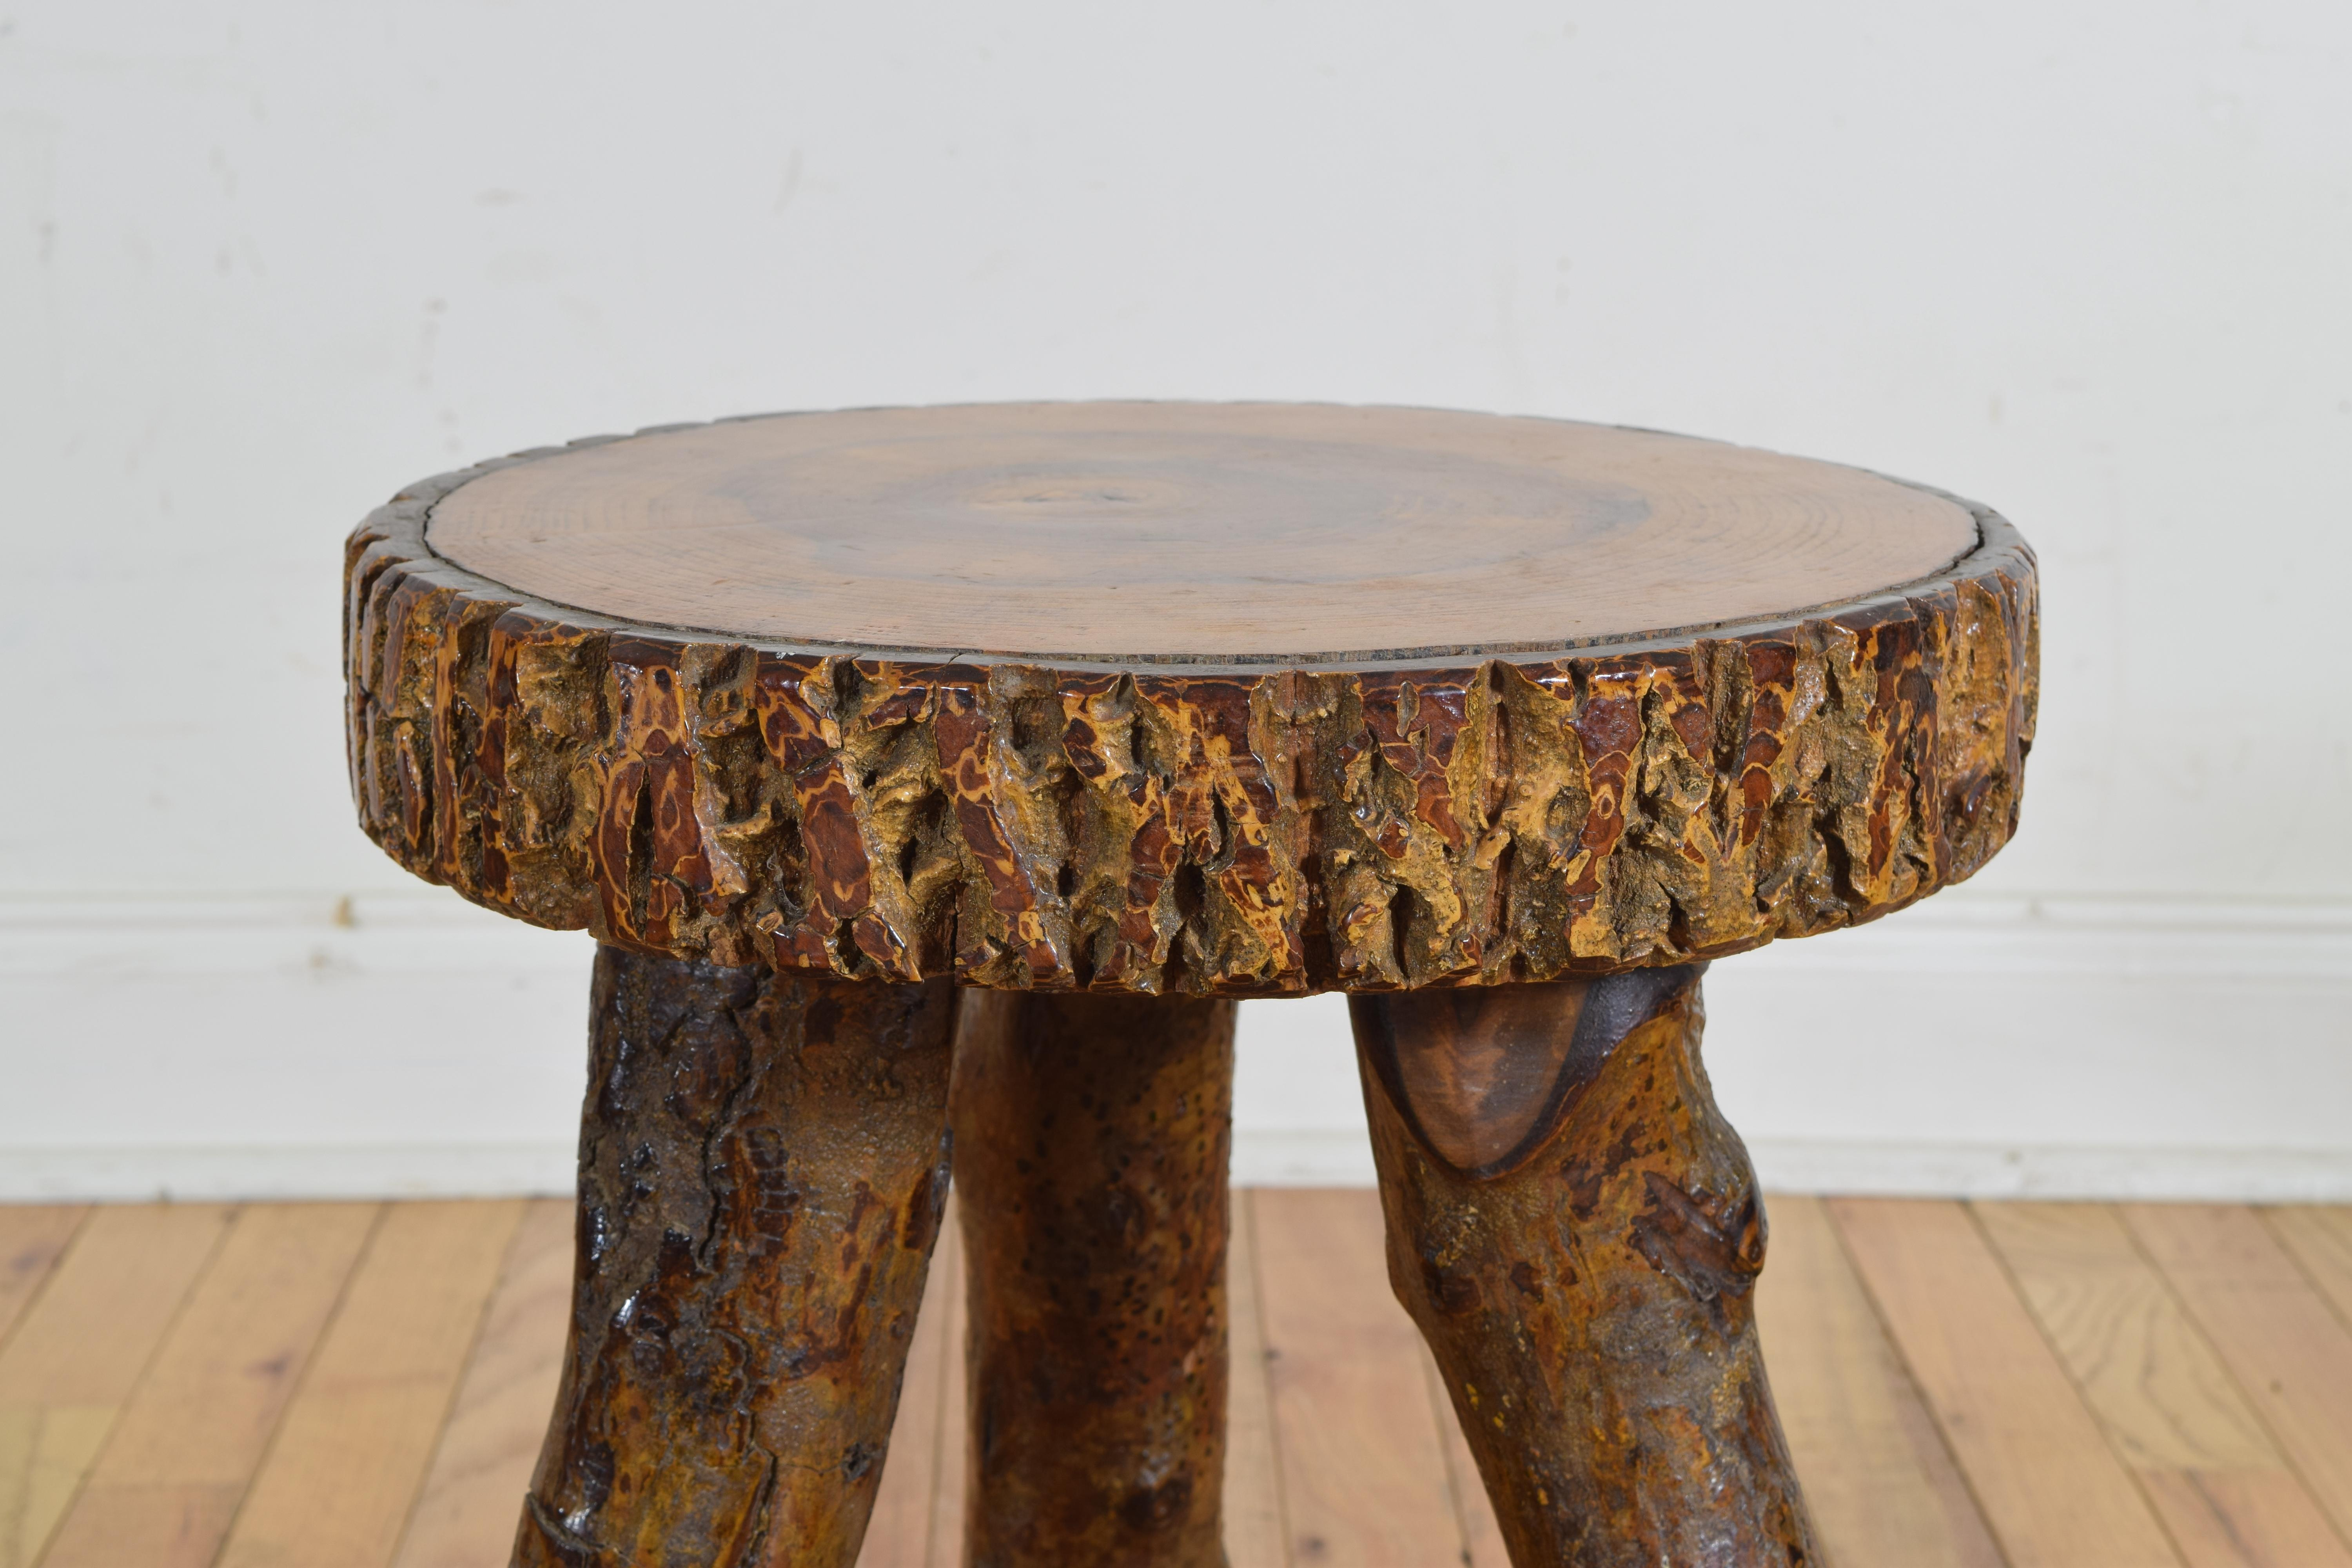 Charmant Continental Rustic Side Table, Top Cross Section Of Timber, 20th Century In  Excellent Condition